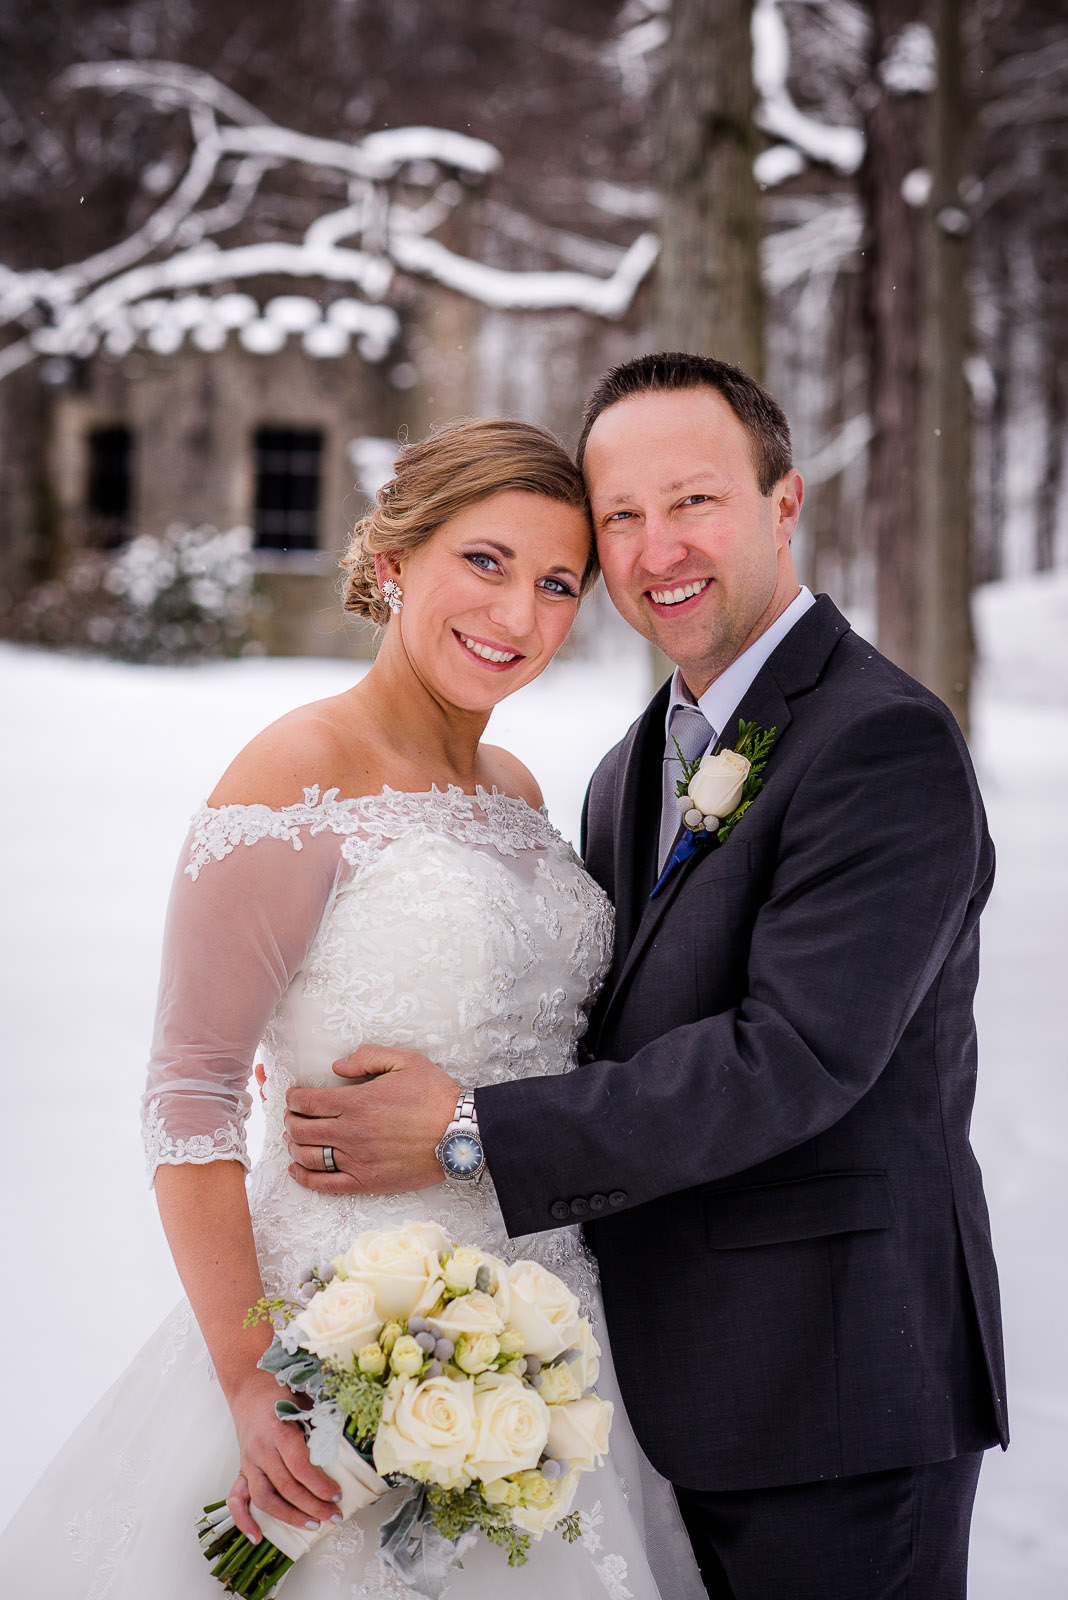 Eric_and_Christy_Photography_Blog_2017_Best_Portraits-4